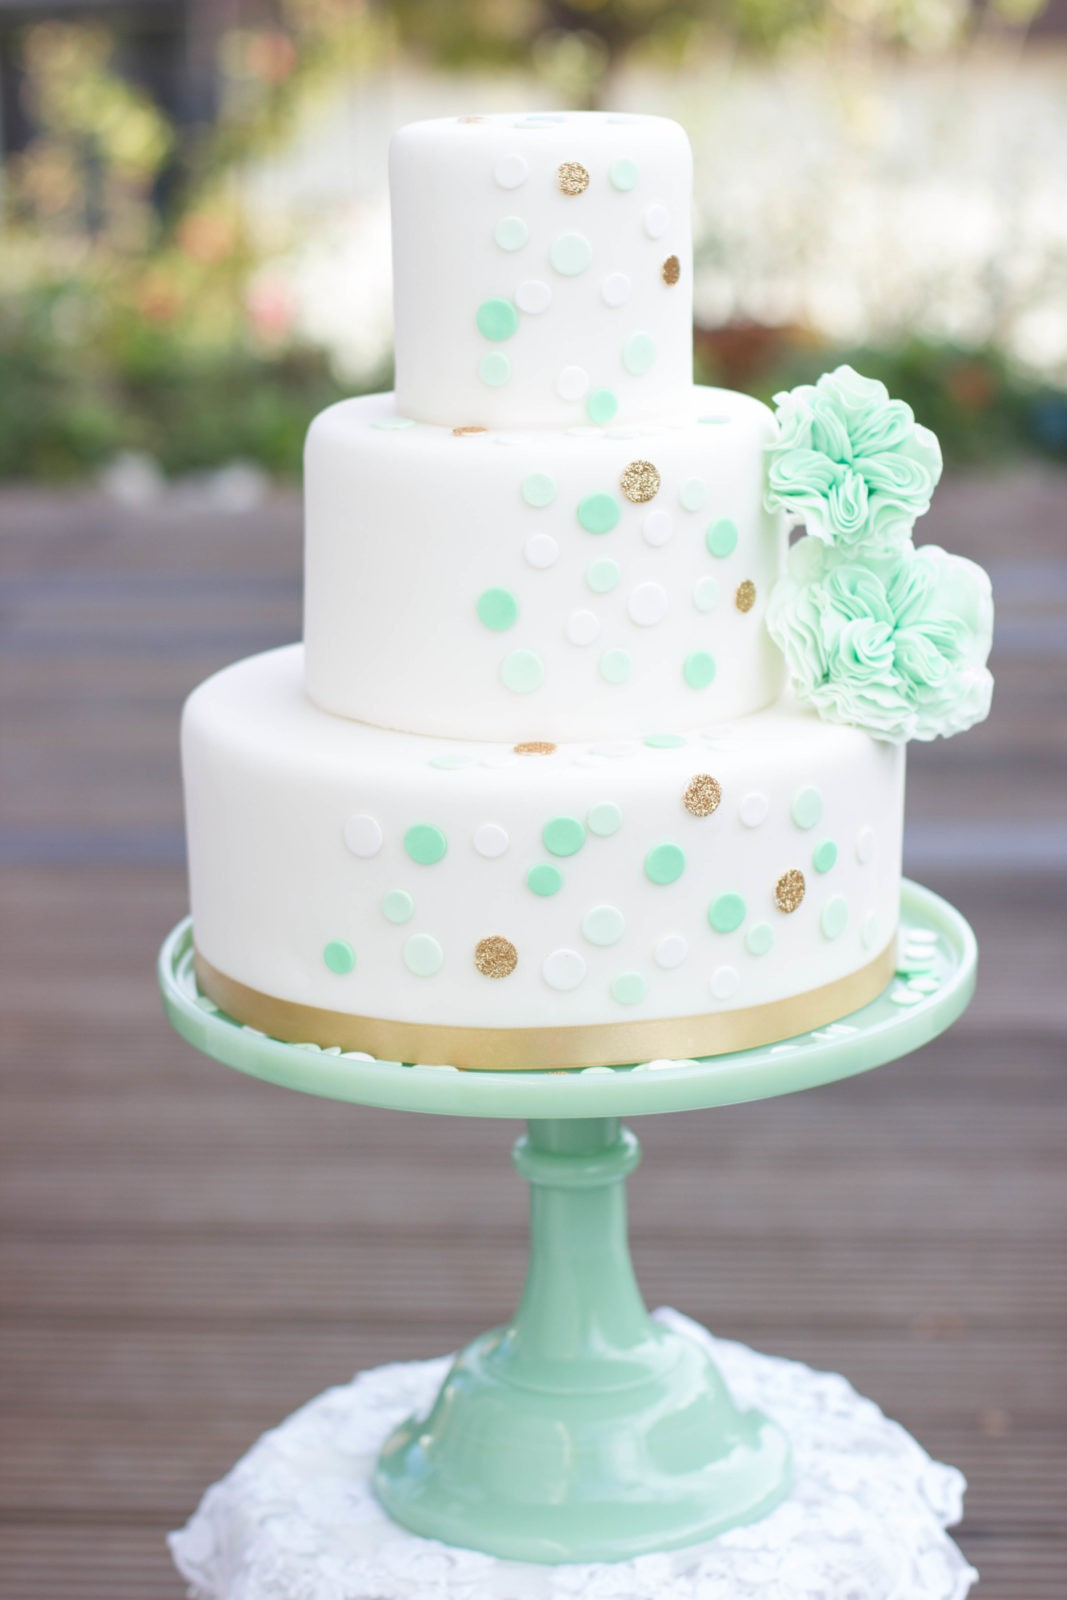 Moderne Hochzeitstorten Pictures to pin on Pinterest